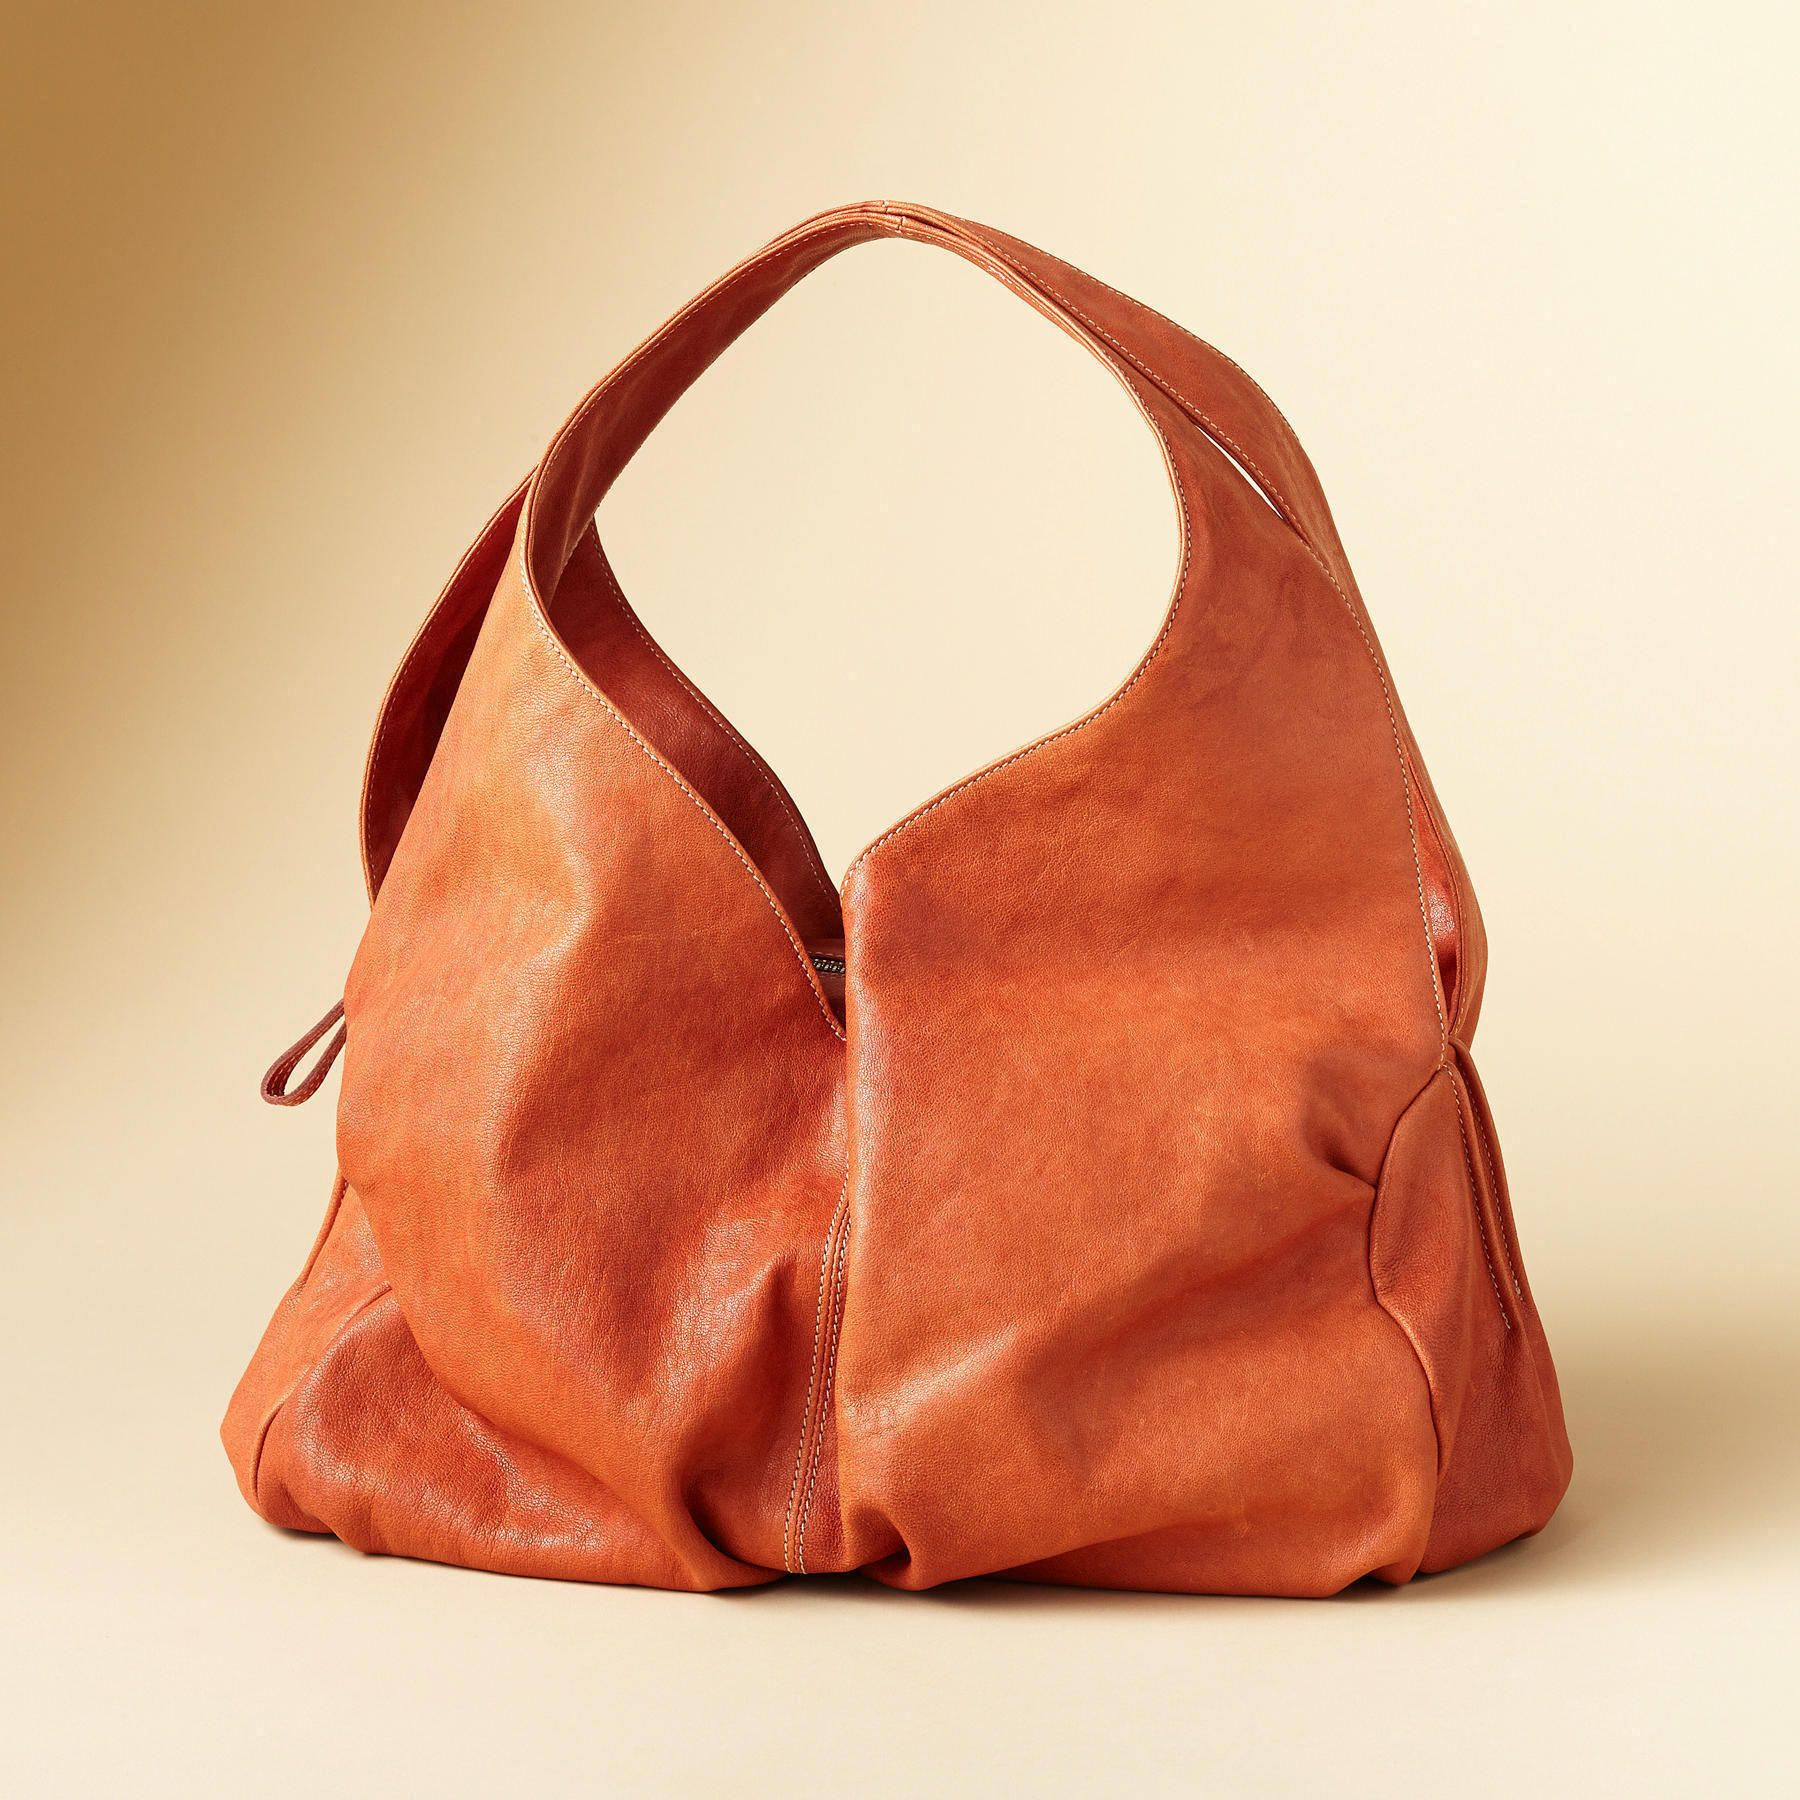 """PLENTITUDE OF POCKETS BAG--Our bag is a plethora of pouches—four open exterior pockets span the sides for close-at-hand storage of cell phone and such. The equally commodious main compartment zips shut, fully lined with pockets on both sides. Made in Italy of soft sheepskin leather. Approx. 13-1/2""""W x 5""""D x 7""""H."""